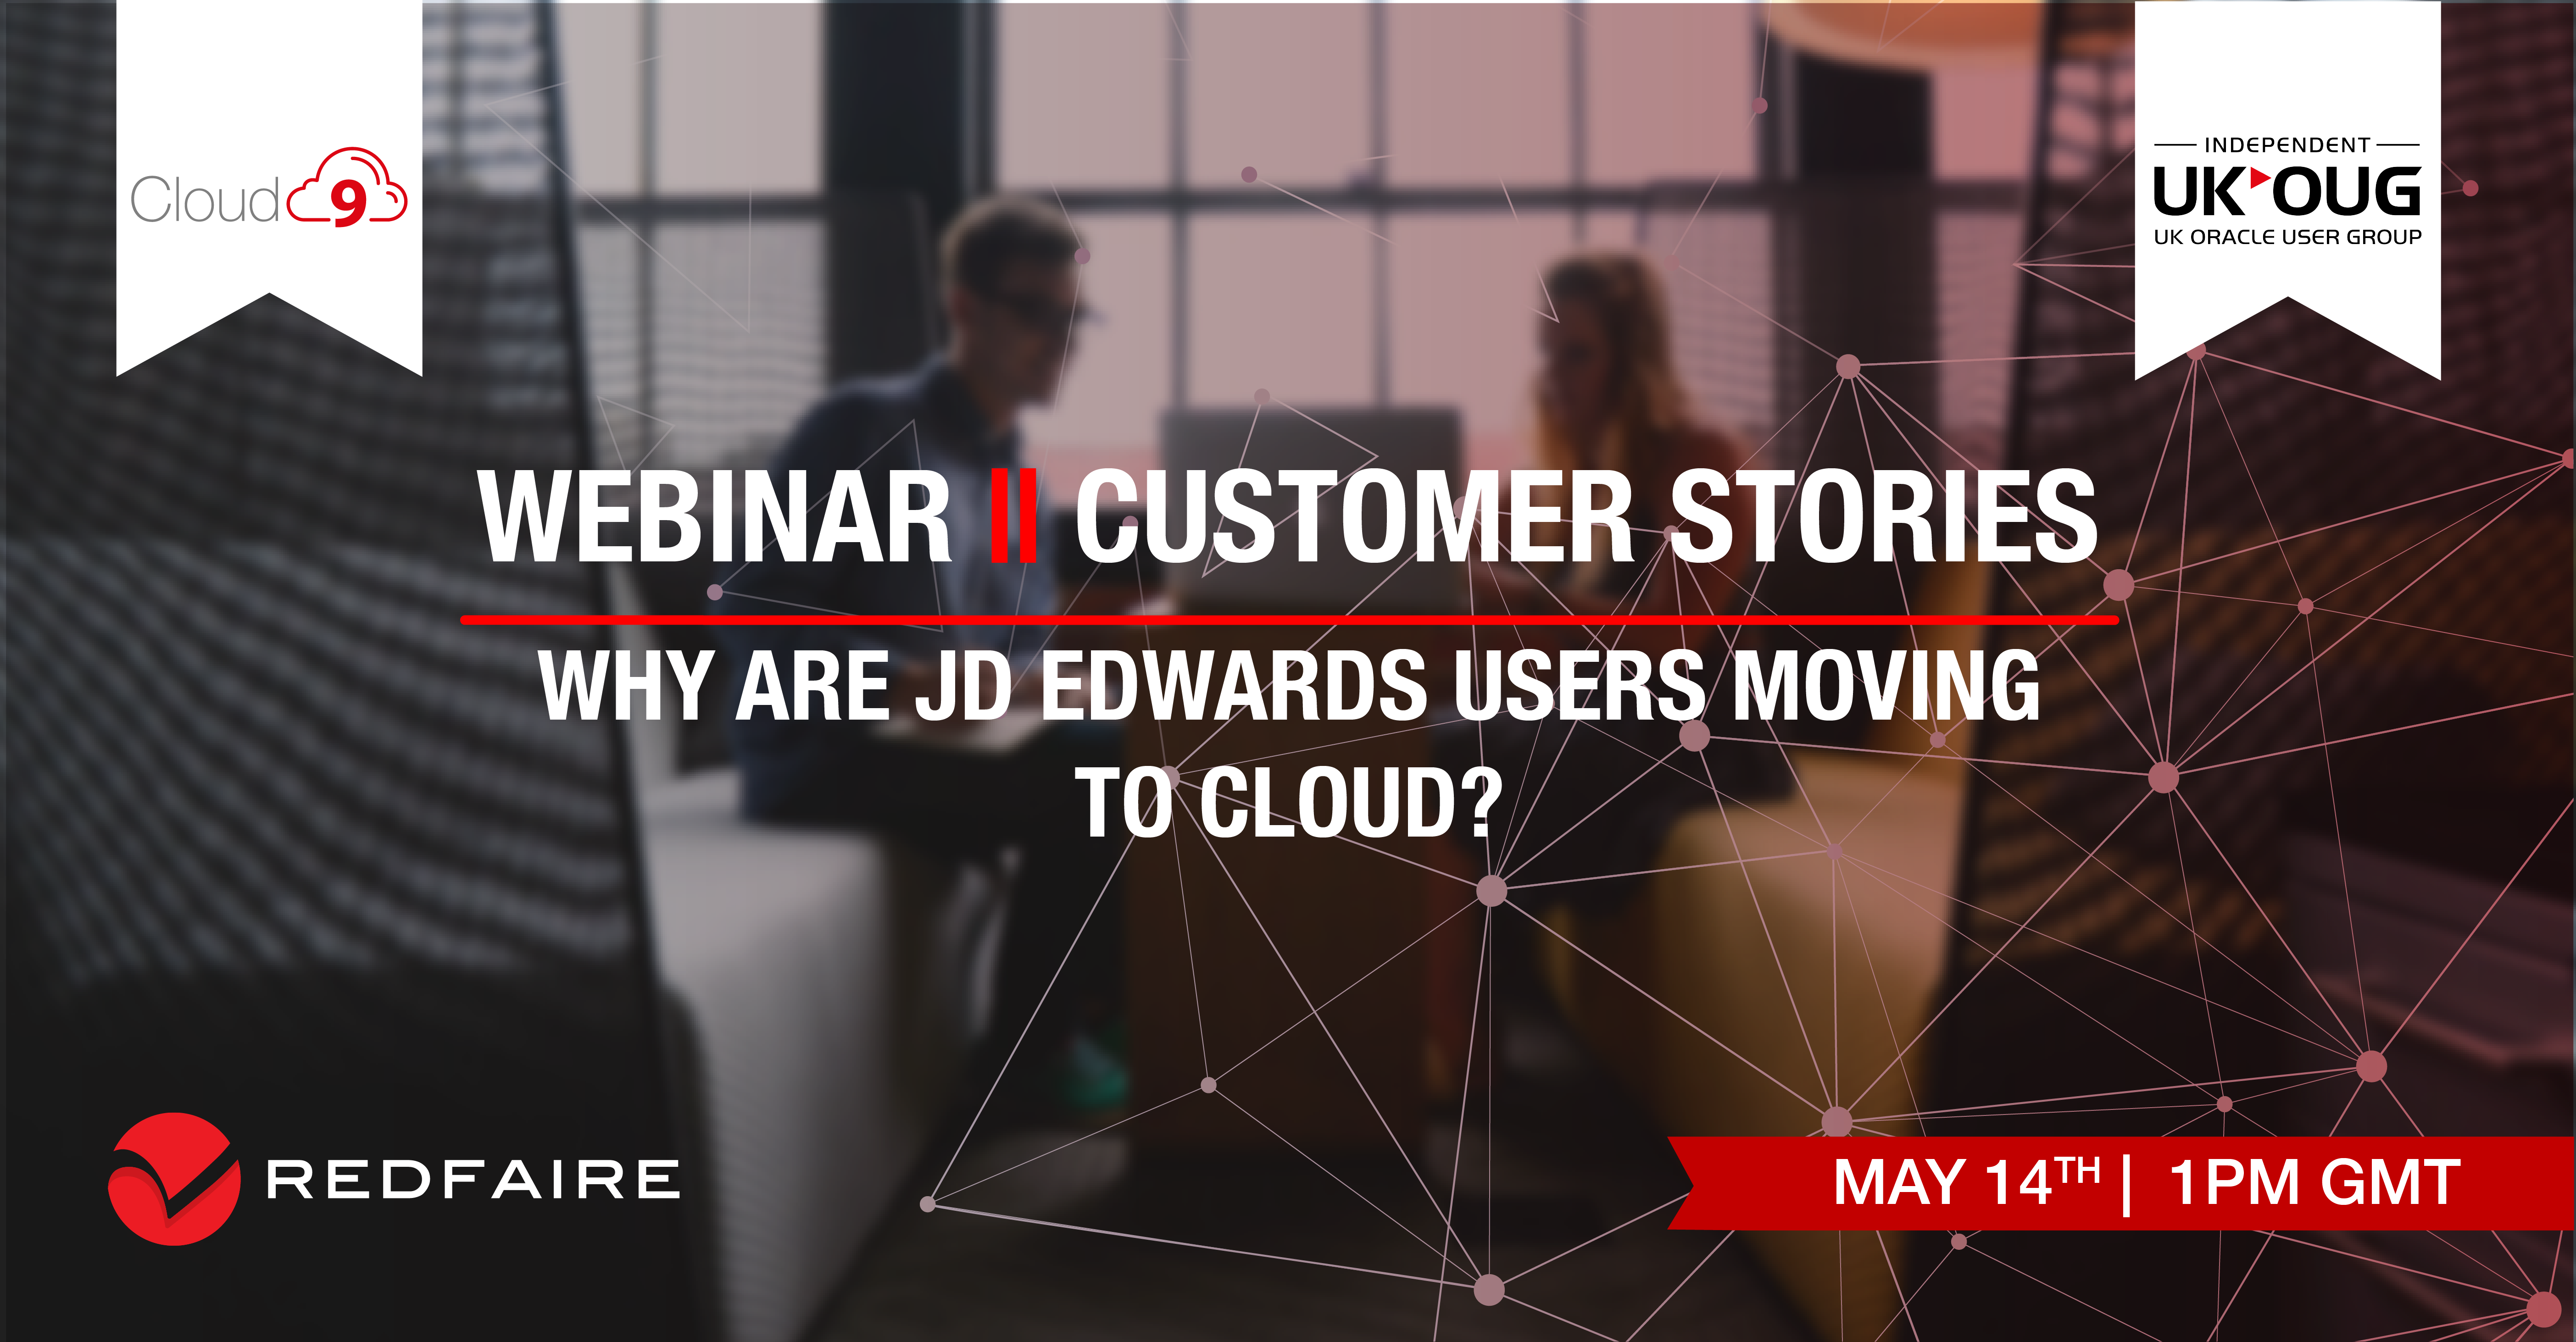 May 14th | WEBINAR | Moving JD Edwards to Cloud - Customer Stories Image